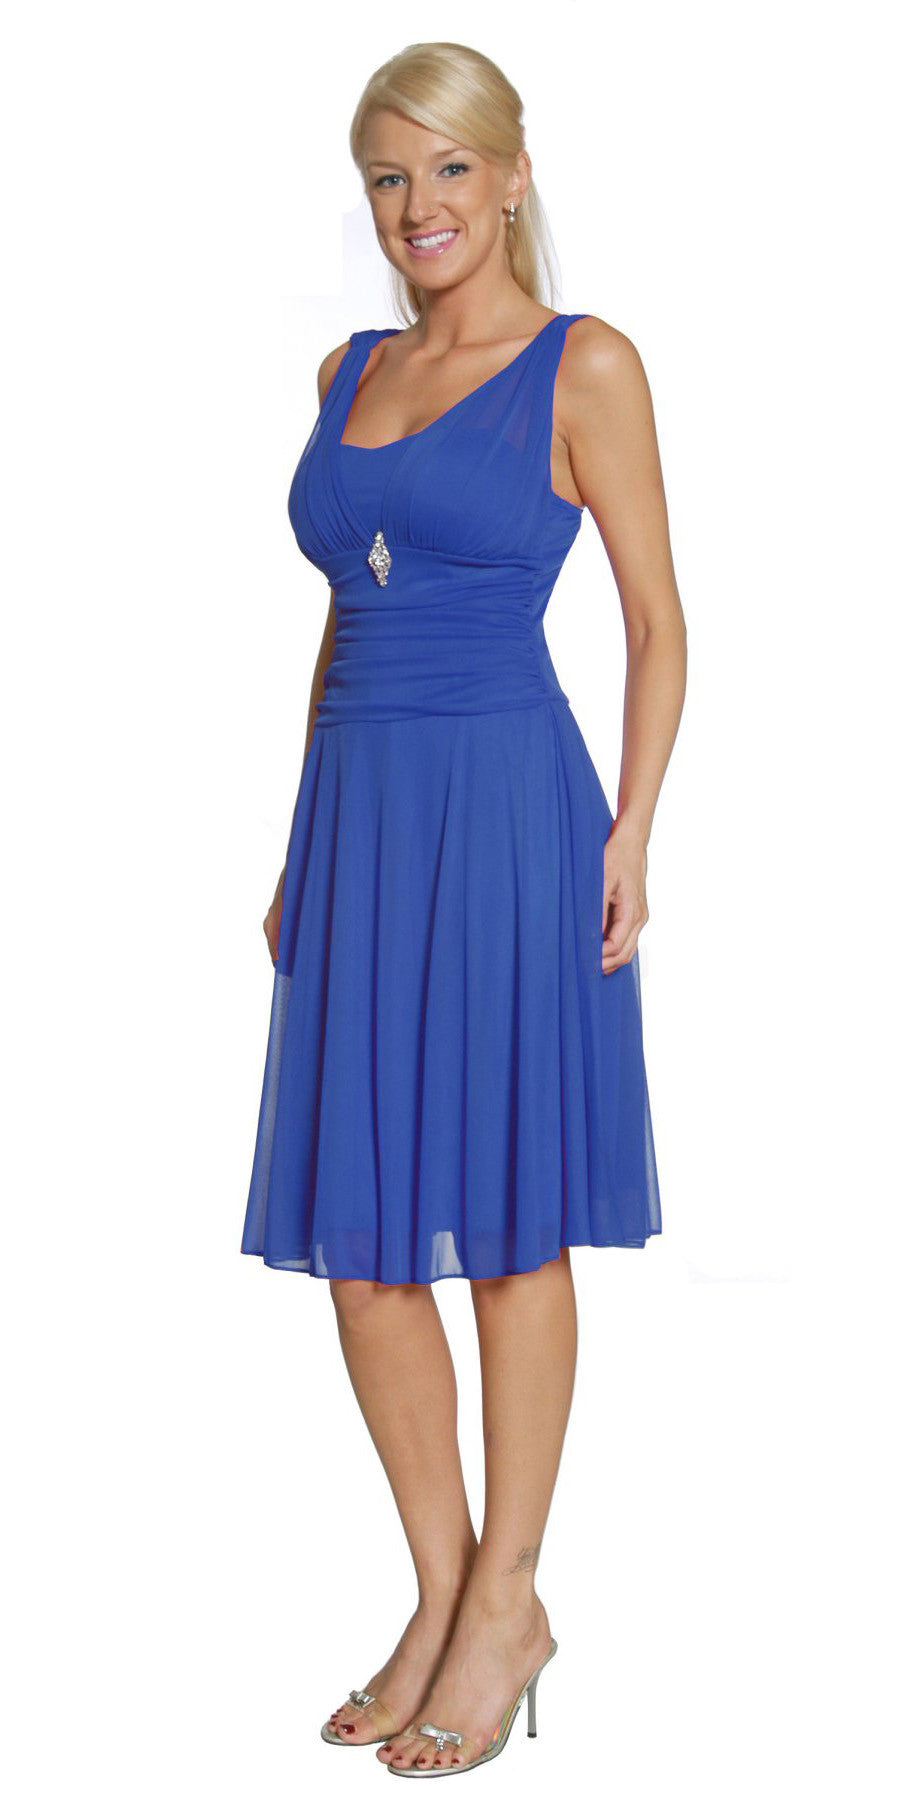 Short Royal Blue Dress Knee Length Bridesmaid Chiffon Wide Straps